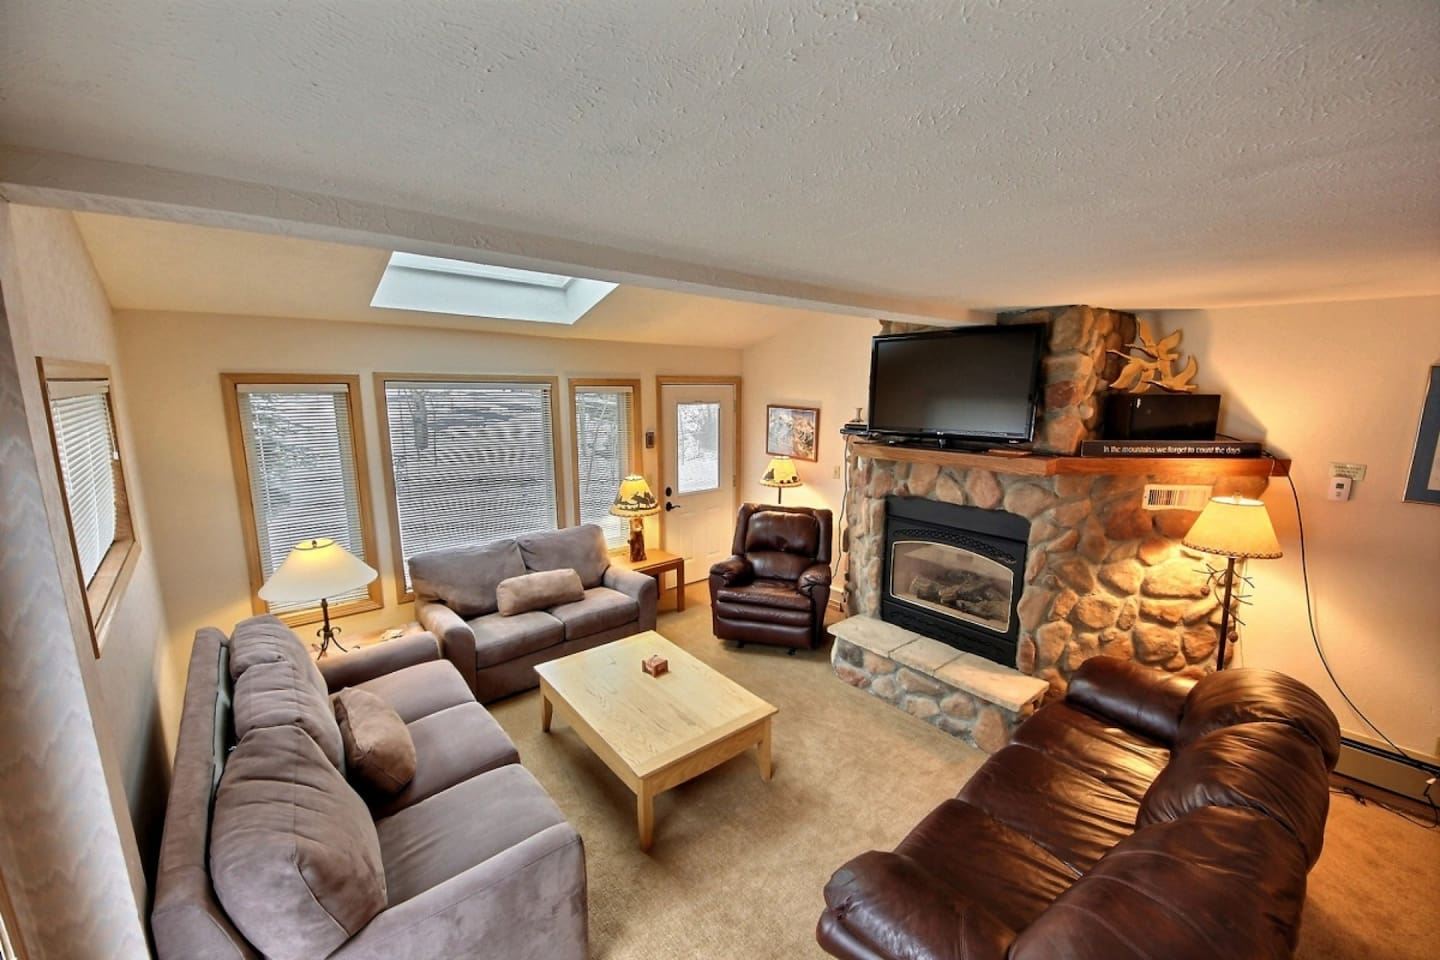 Ample, cushy seating around TV and fireplace!